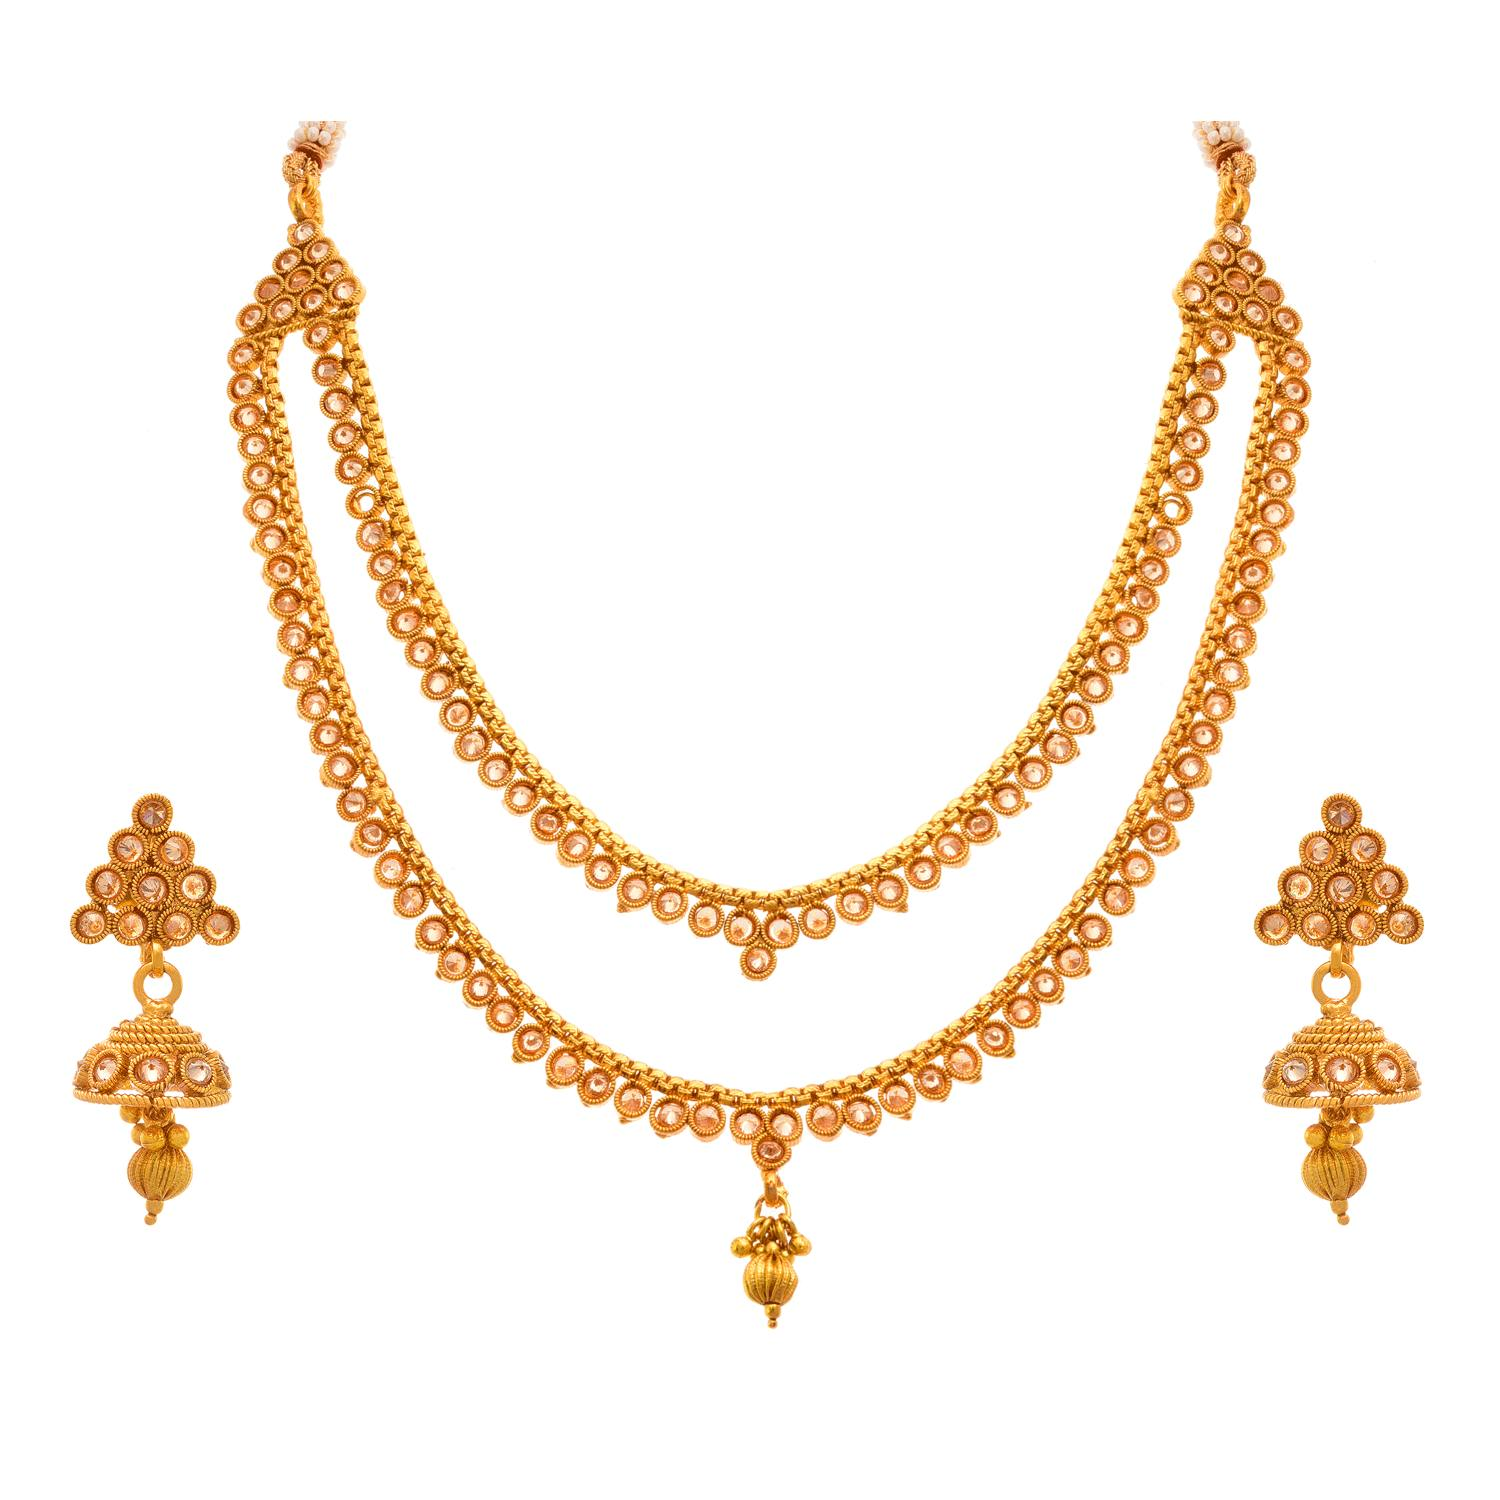 JFL - Traditional and Ethnic One Gram Gold Plated Cz American Polki Diamonds Designer Necklace Set with Earring for Girls & Women